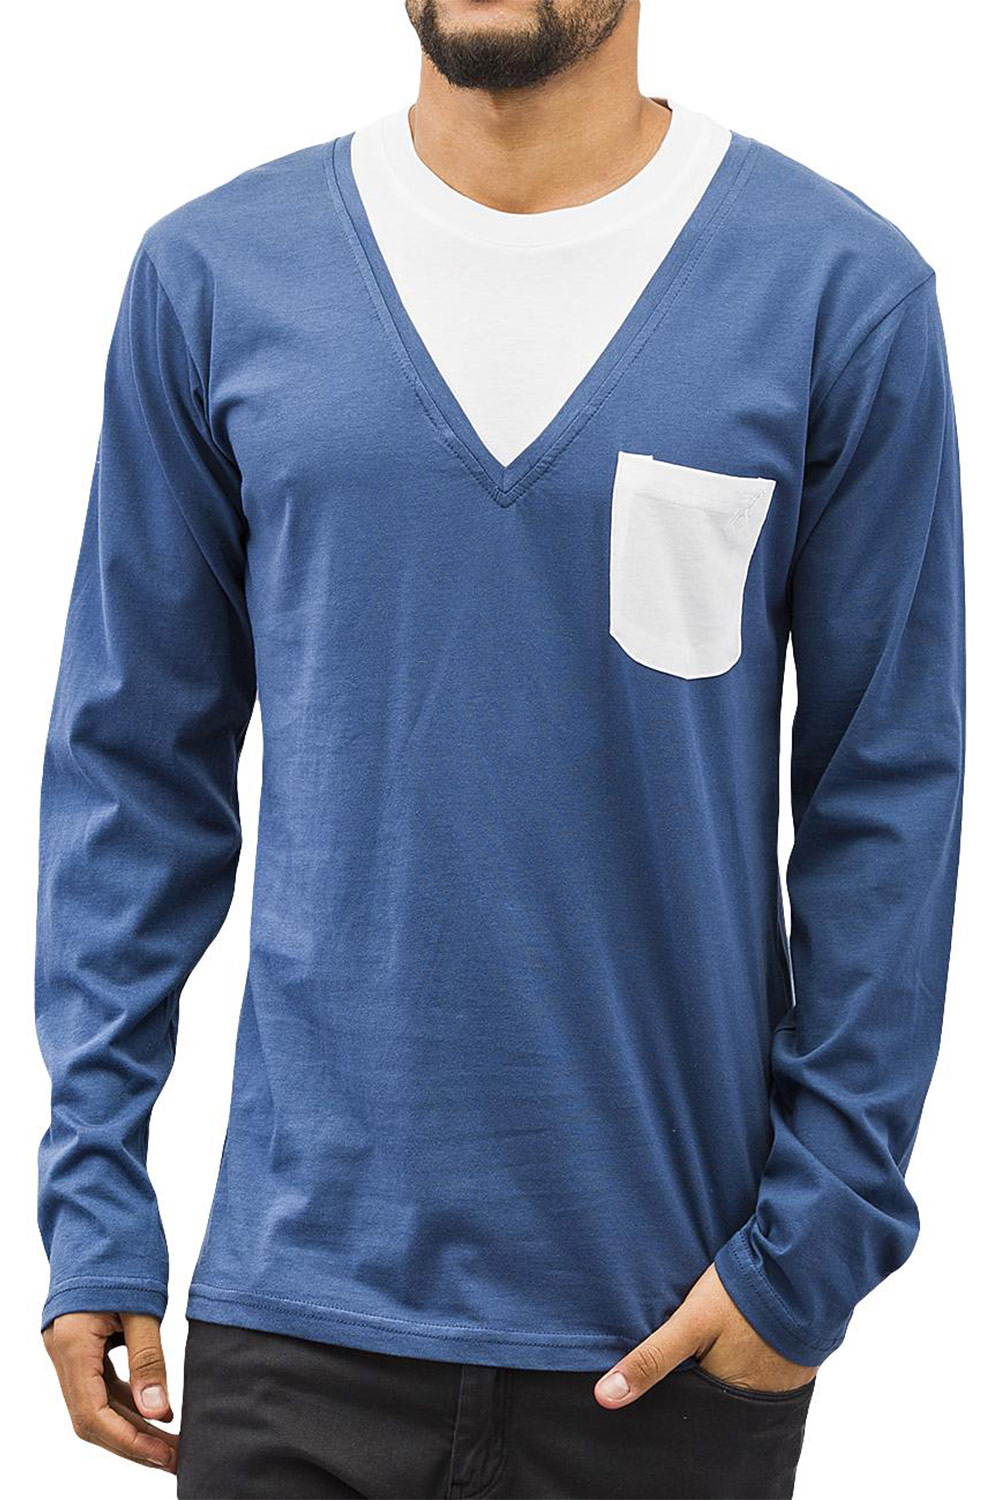 CAZZY CLANG Breast Pocket Longsleeve Blue/White auf oboy.de